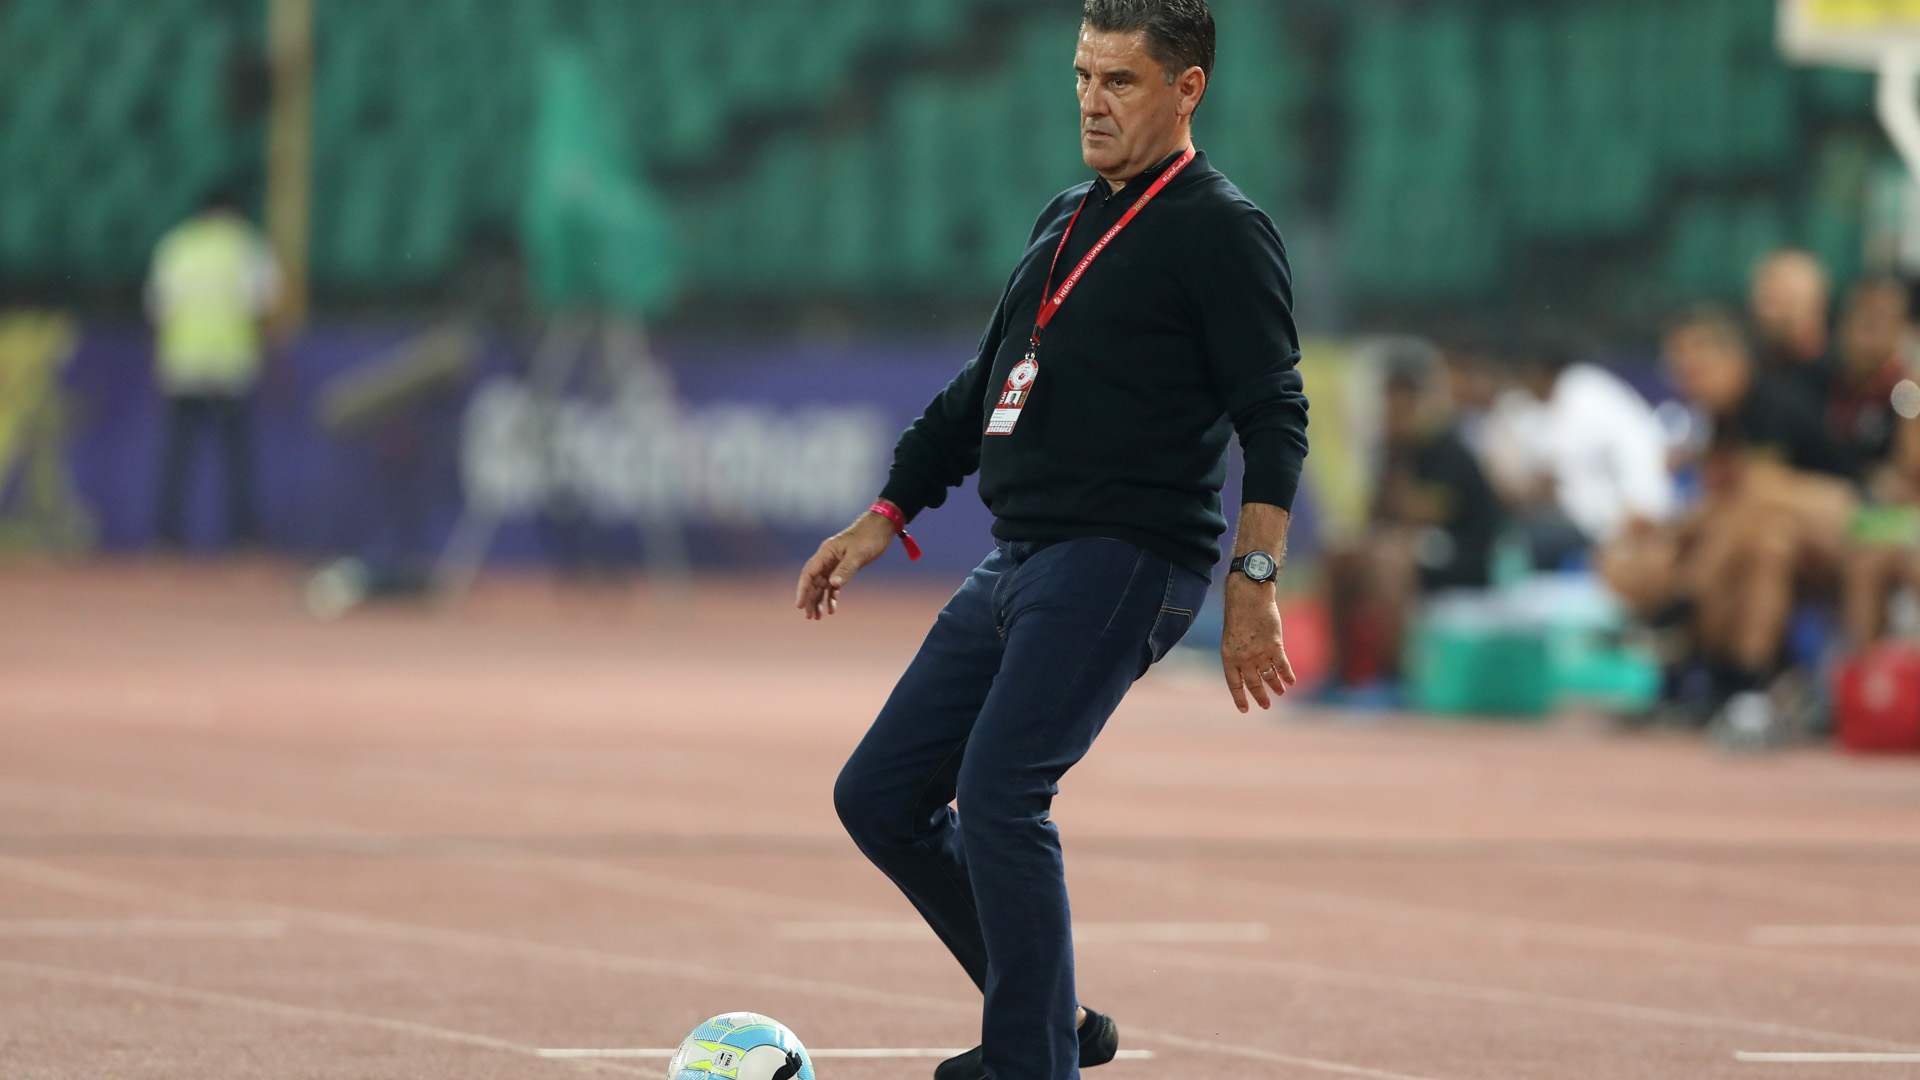 ISL 2017-18: Chennaiyin FC coach suspended for 3 matches